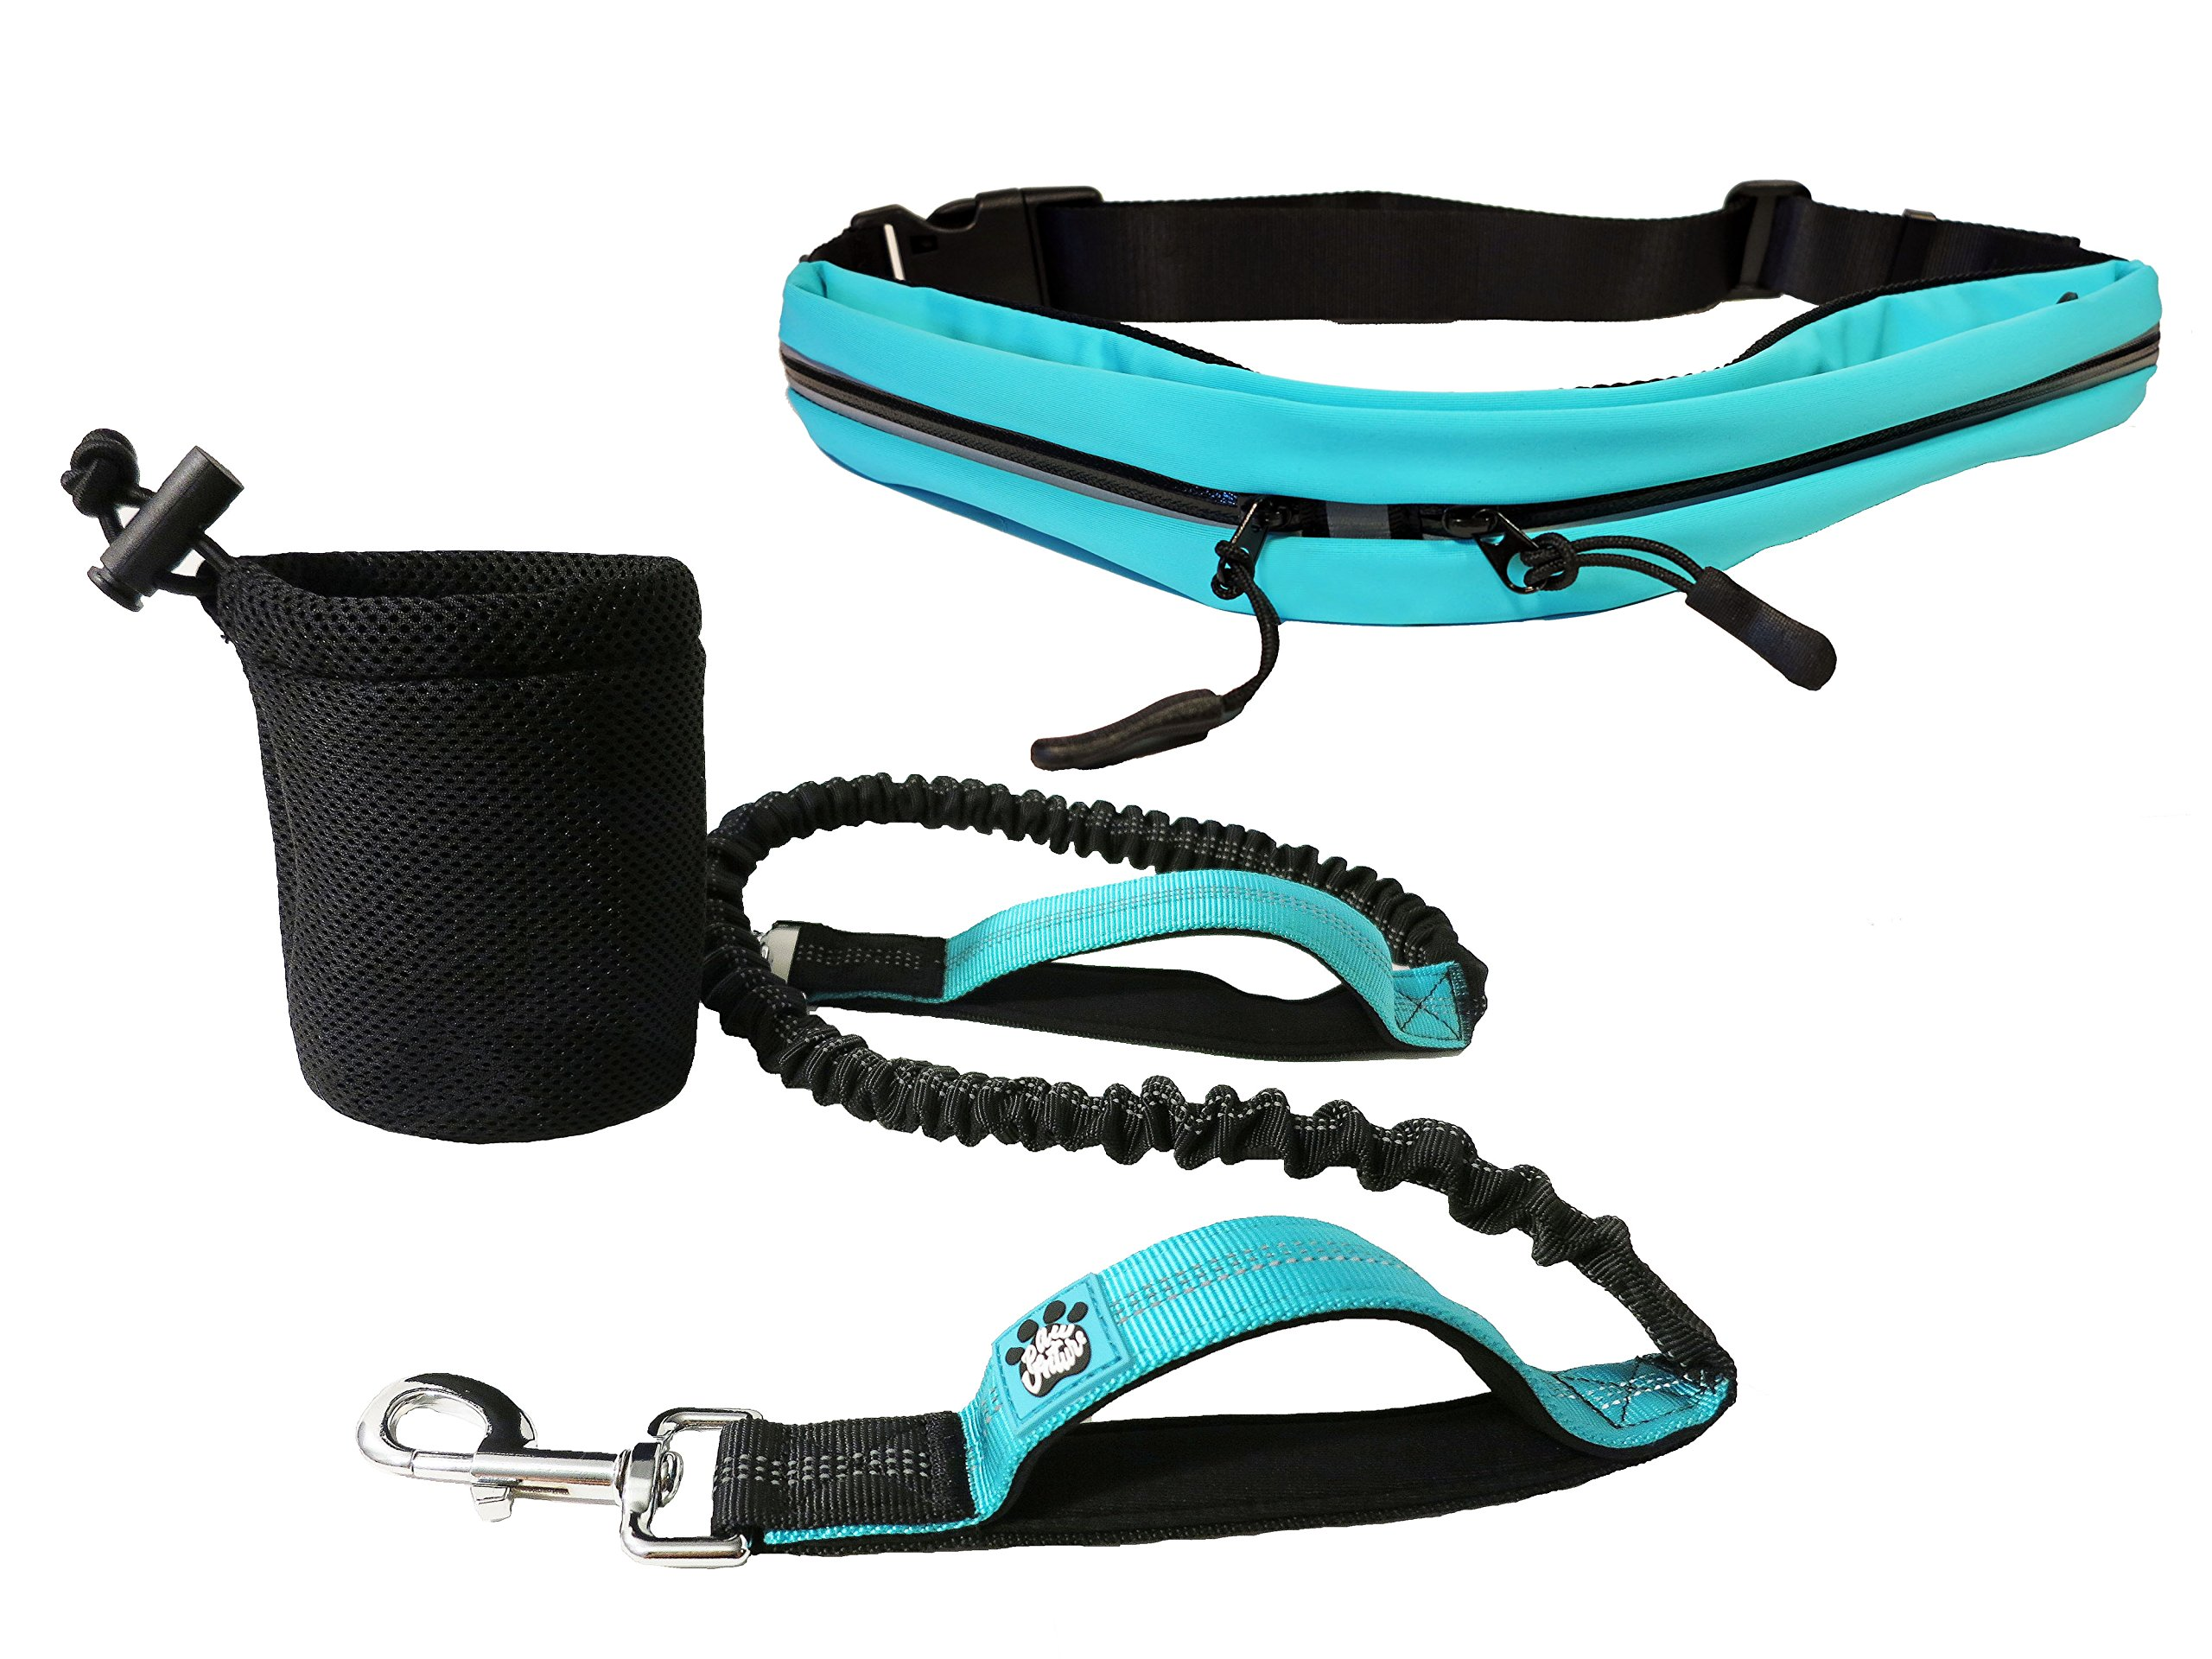 Hands Free Dog Leash Bungee   Running, Walking, and Training Belt for Medium to Large Dogs  Two Padded Handles, Waterproof Pouch for Smartphone and Bottle Holder